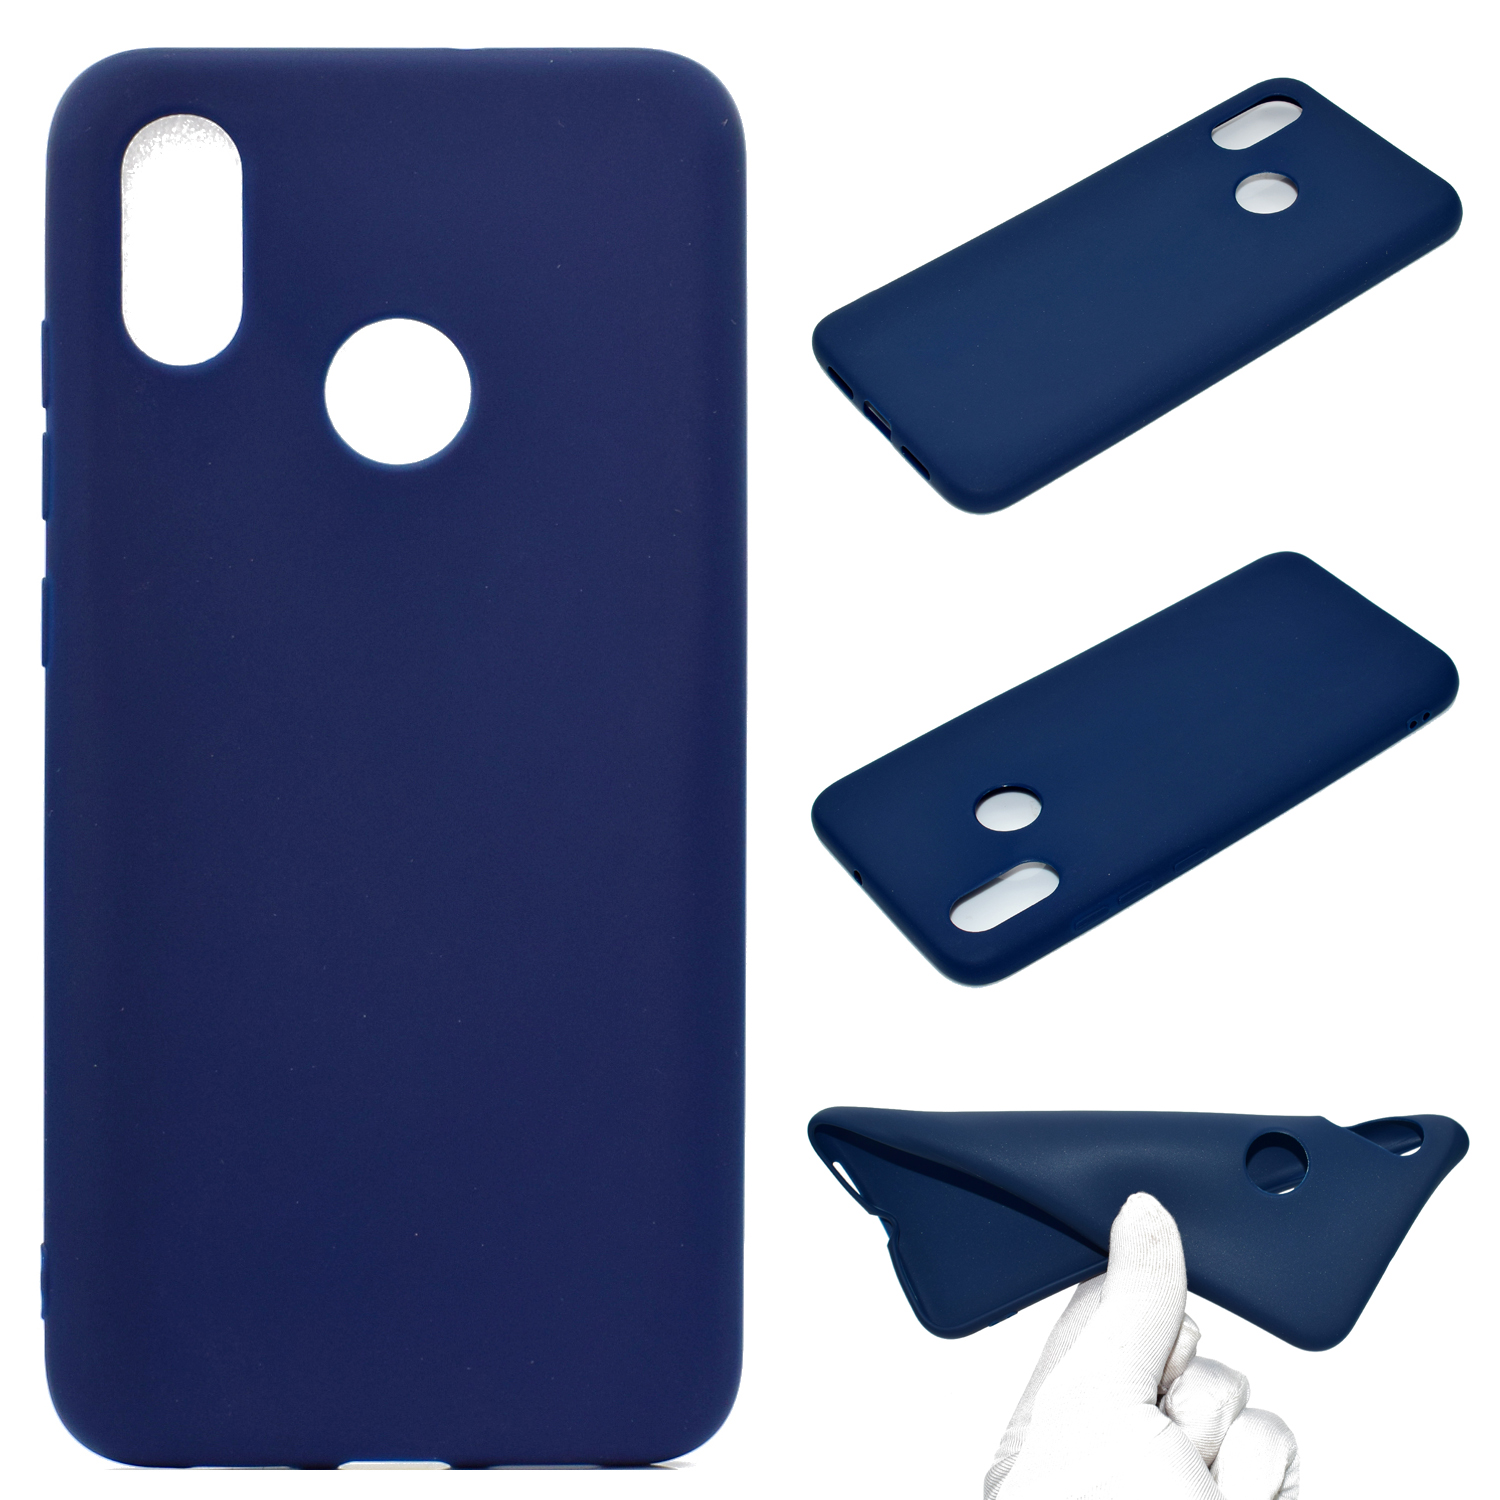 For HUAWEI Y6 2019 Lovely Candy Color Matte TPU Anti-scratch Non-slip Protective Cover Back Case Navy